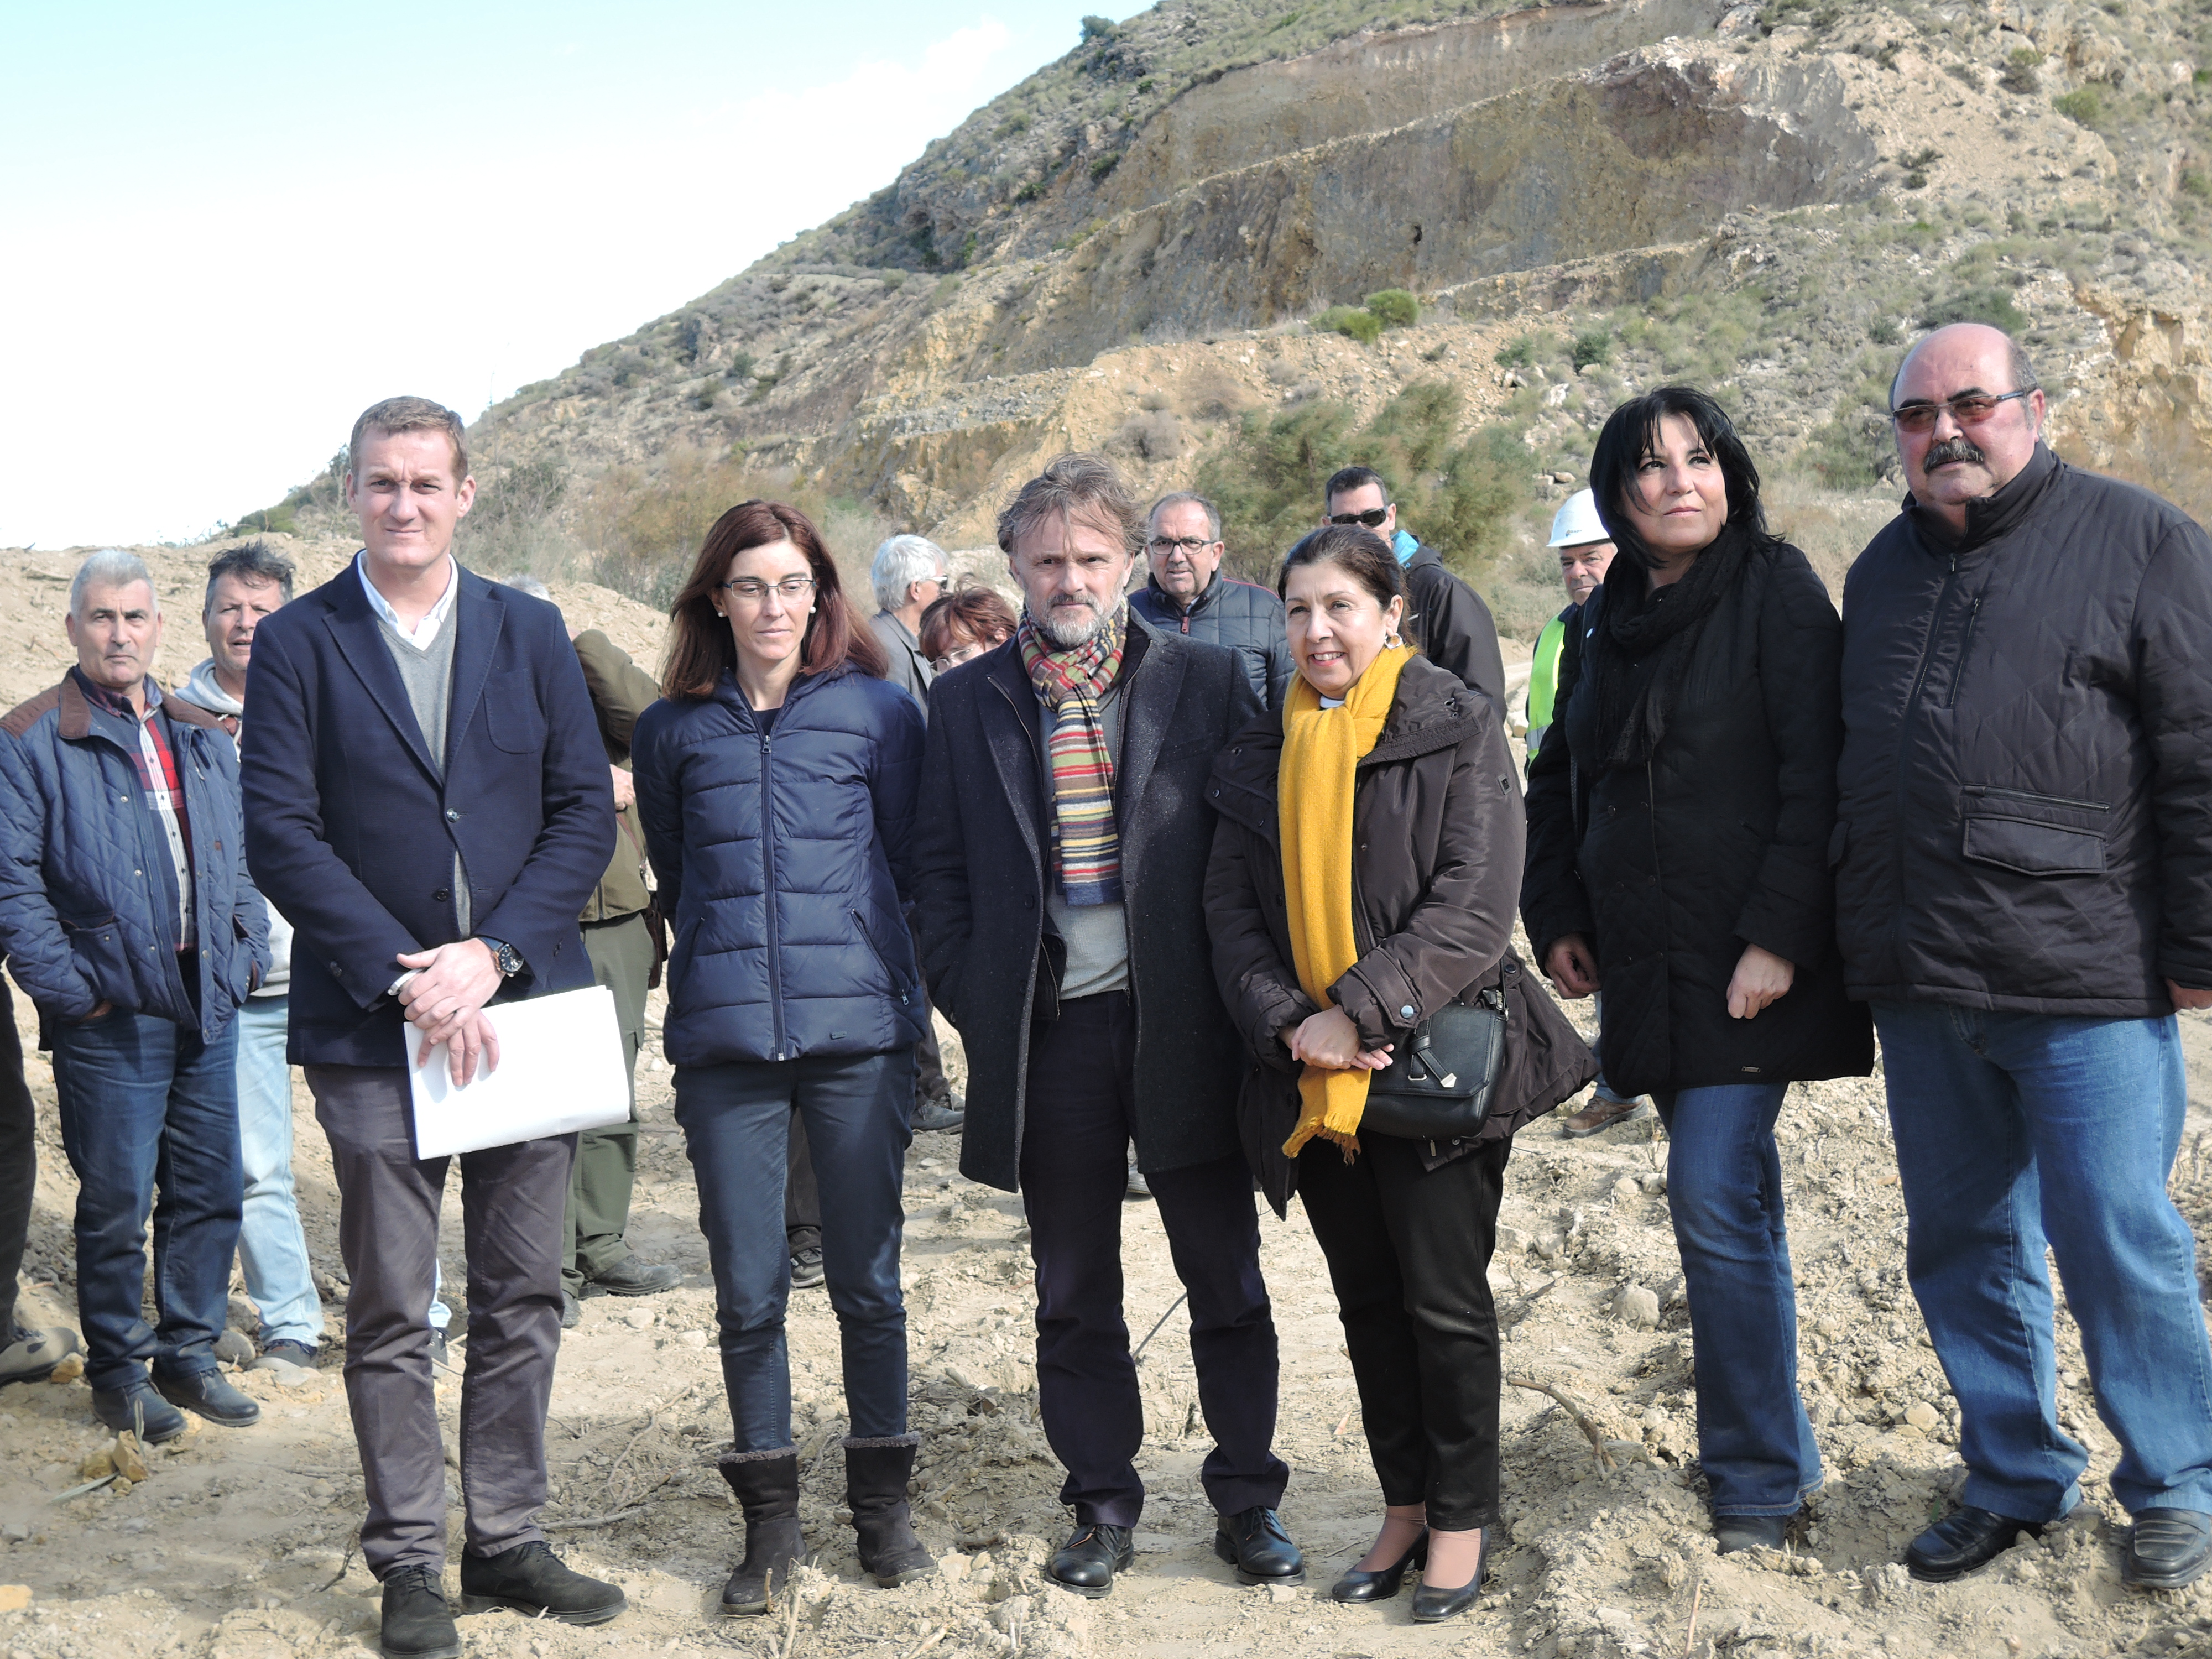 Mojácar's Mayor, Rosmari Cano, accompanied by the Minister for the Environment and Regional Planning, José Fiscal, recently visited the works that are being carried out along a 1.5 km section of the Río Aguas, in the Laguna de Mojácar.